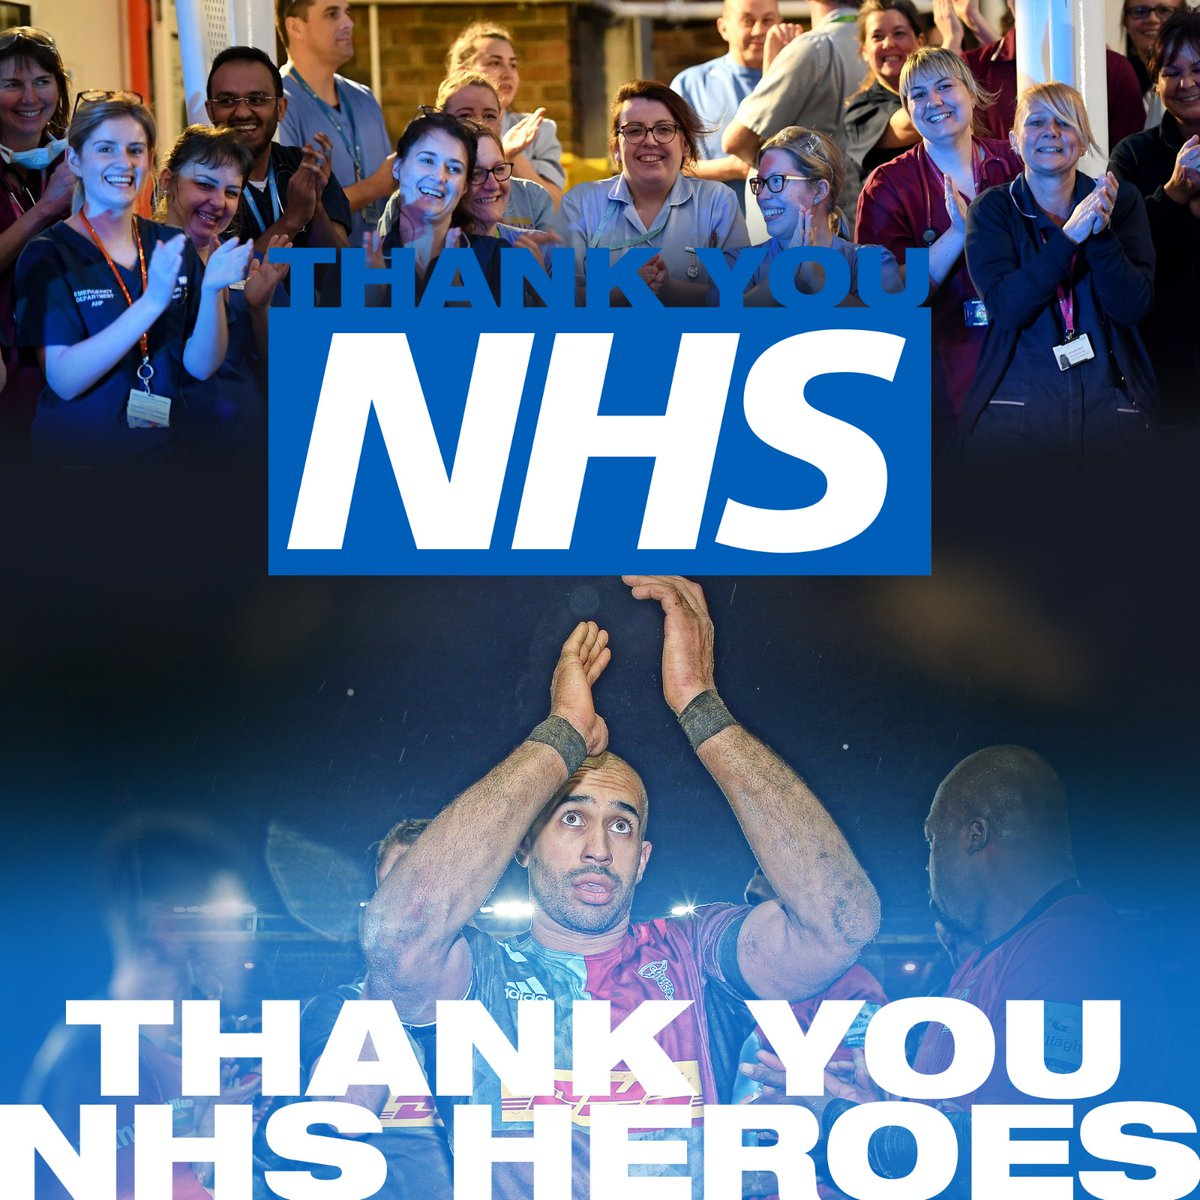 👏 At 5pm we will proudly join other sports to say #ThankYouTogether to celebrate the NHS on its 72nd birthday.  #NHS72 #NHSBirthday https://t.co/sT0QnISGaq